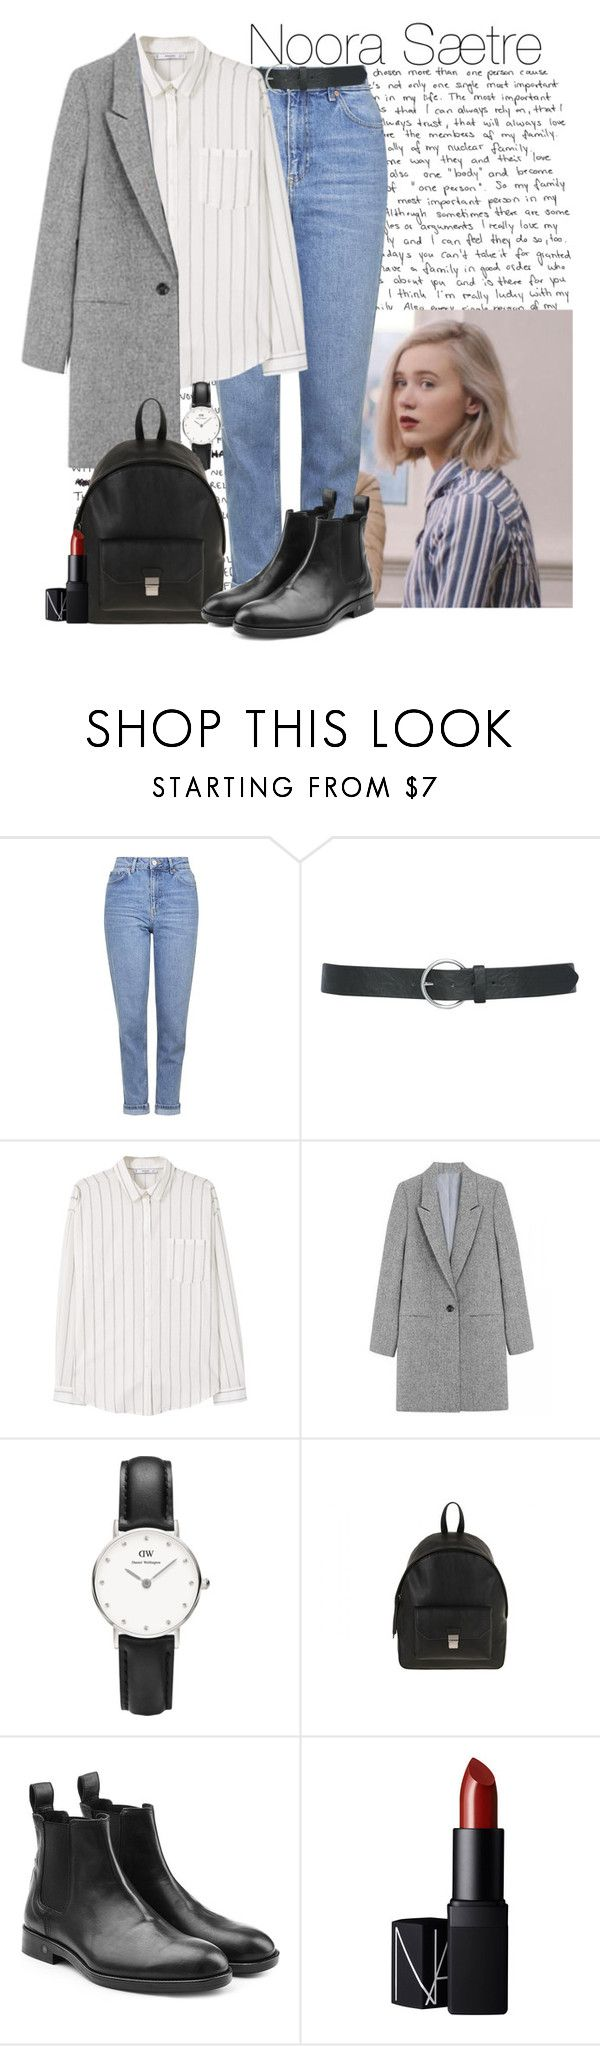 """Noora's style"" by ara1ka ❤ liked on Polyvore featuring Topshop, M&Co, MANGO, Daniel Wellington, Zadig & Voltaire and NARS Cosmetics"